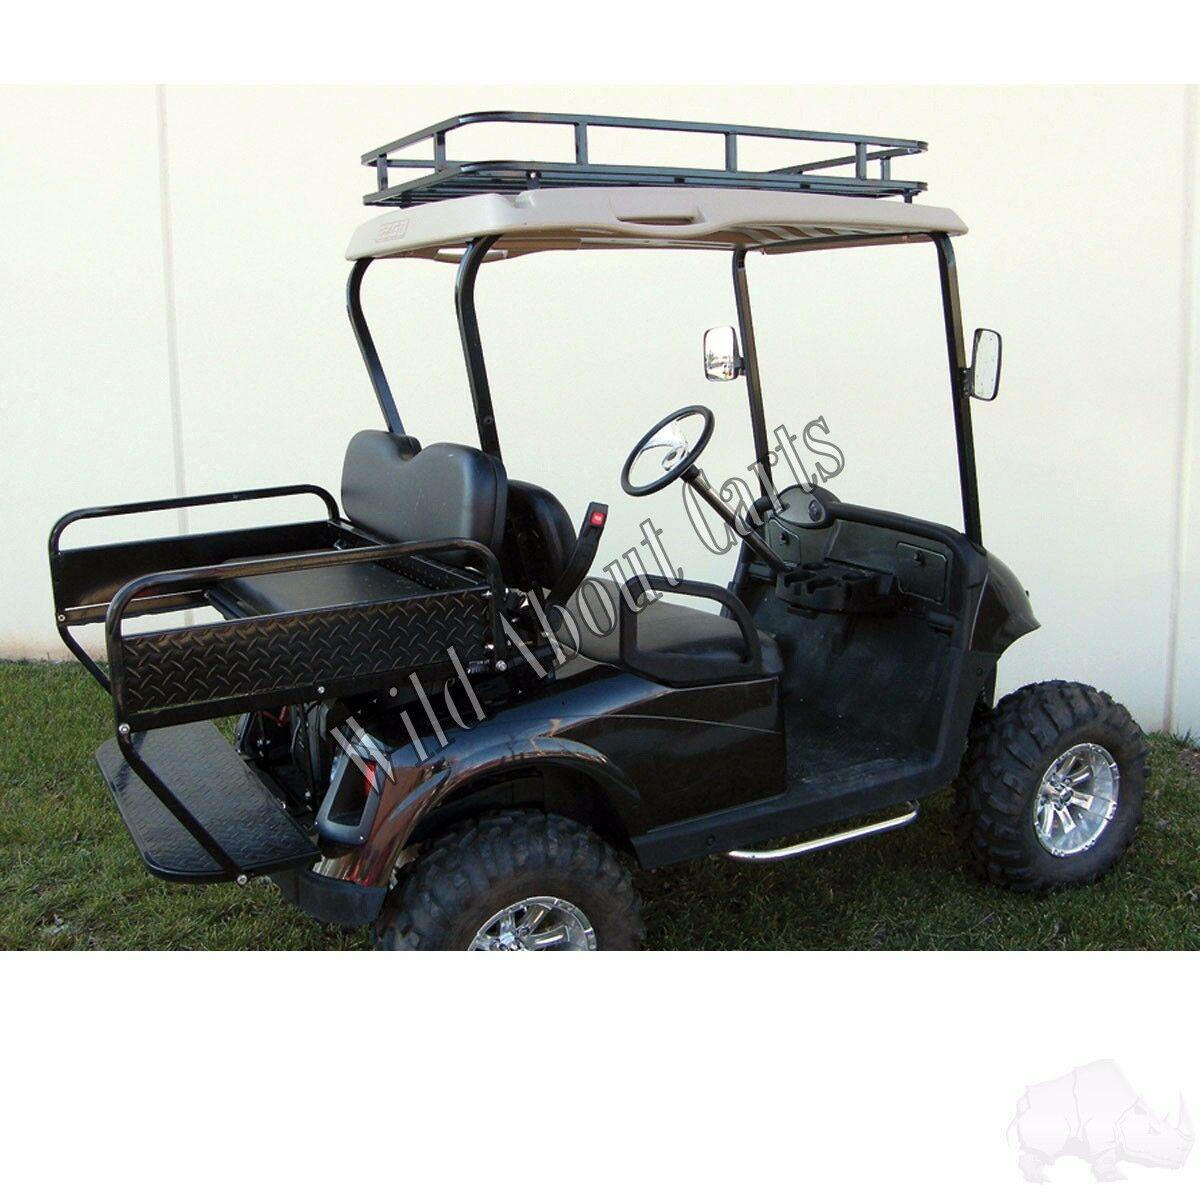 Golf Cart Roof Rack Storage System for EZGO RXV | eBay Golf Cart Roof Rack Storage on golf cart roof bar, golf cart in water, golf cart roof lights, golf cart roof top, golf cart radio, golf cart cargo rack, golf cart horn, golf cart center cap, golf cart fuse box, golf cart roof kits, golf cart roof replacement, golf cart spindle, golf cart girls, golf cart dog box, golf cart backup camera, golf cart roof metal, golf cart roof storage, golf cart two tone paint, golf cart roof rails, golf cart roof supports,